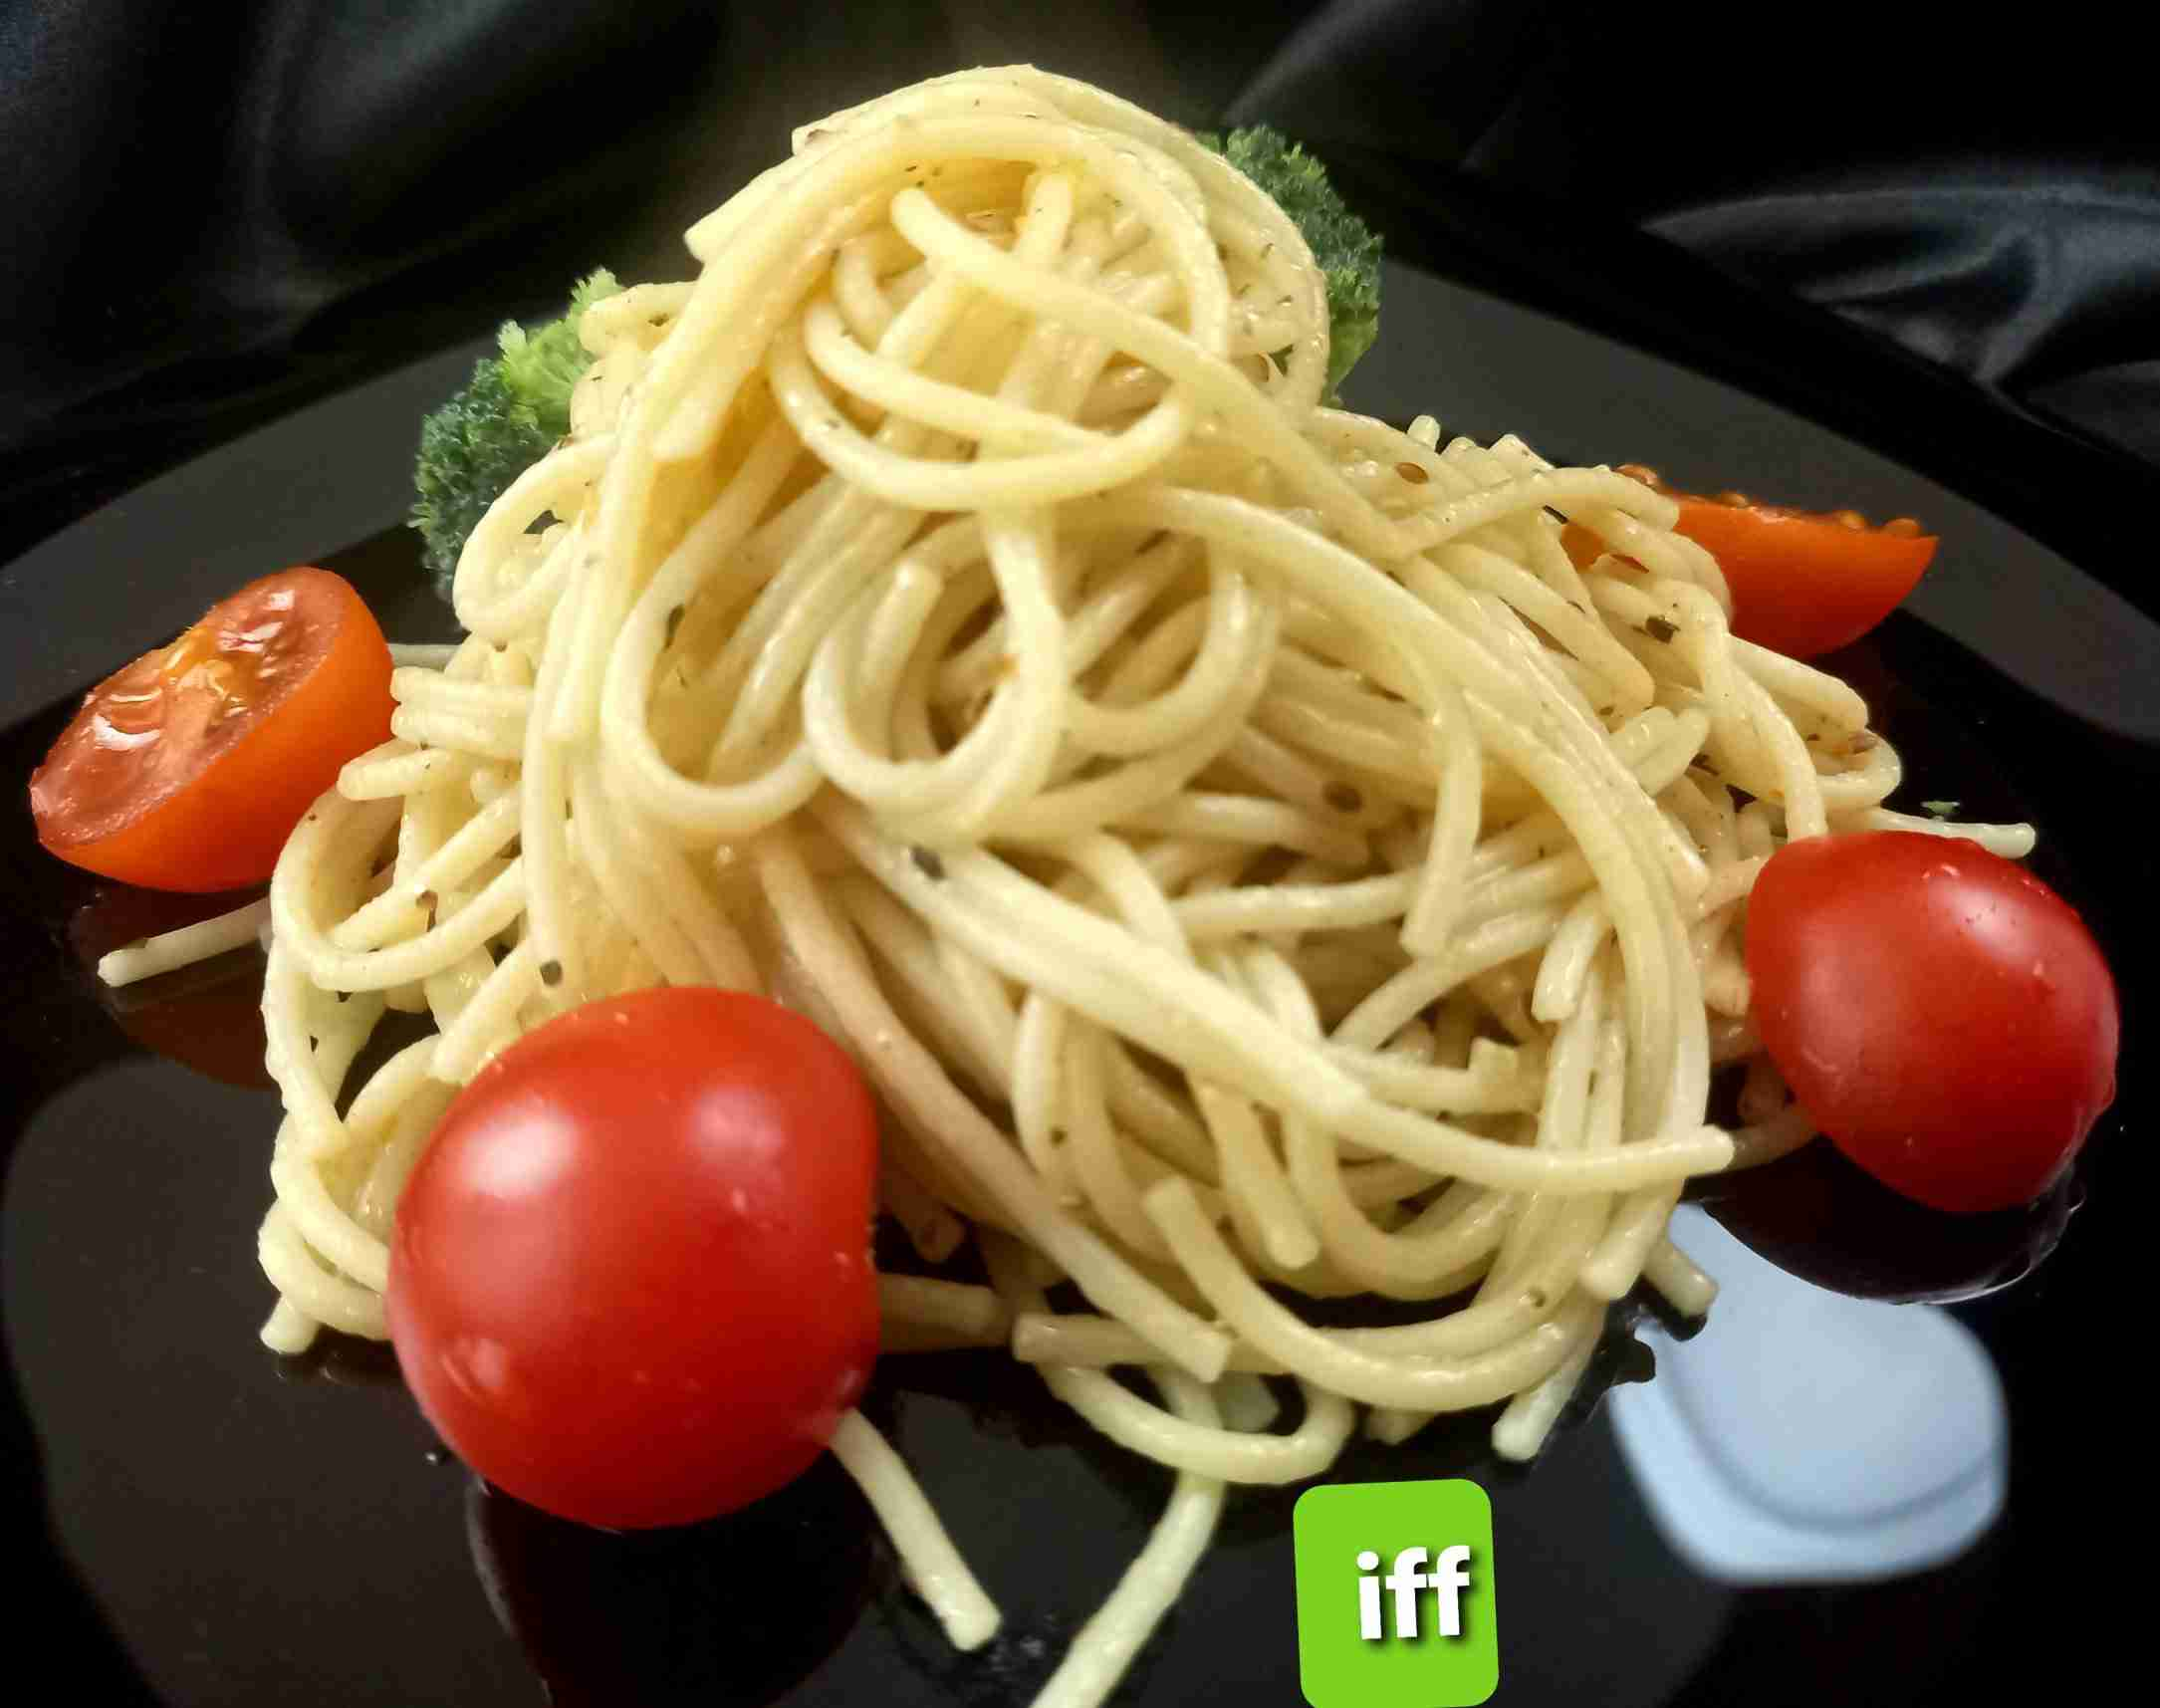 spaghetti pasta with olive oil and garlic